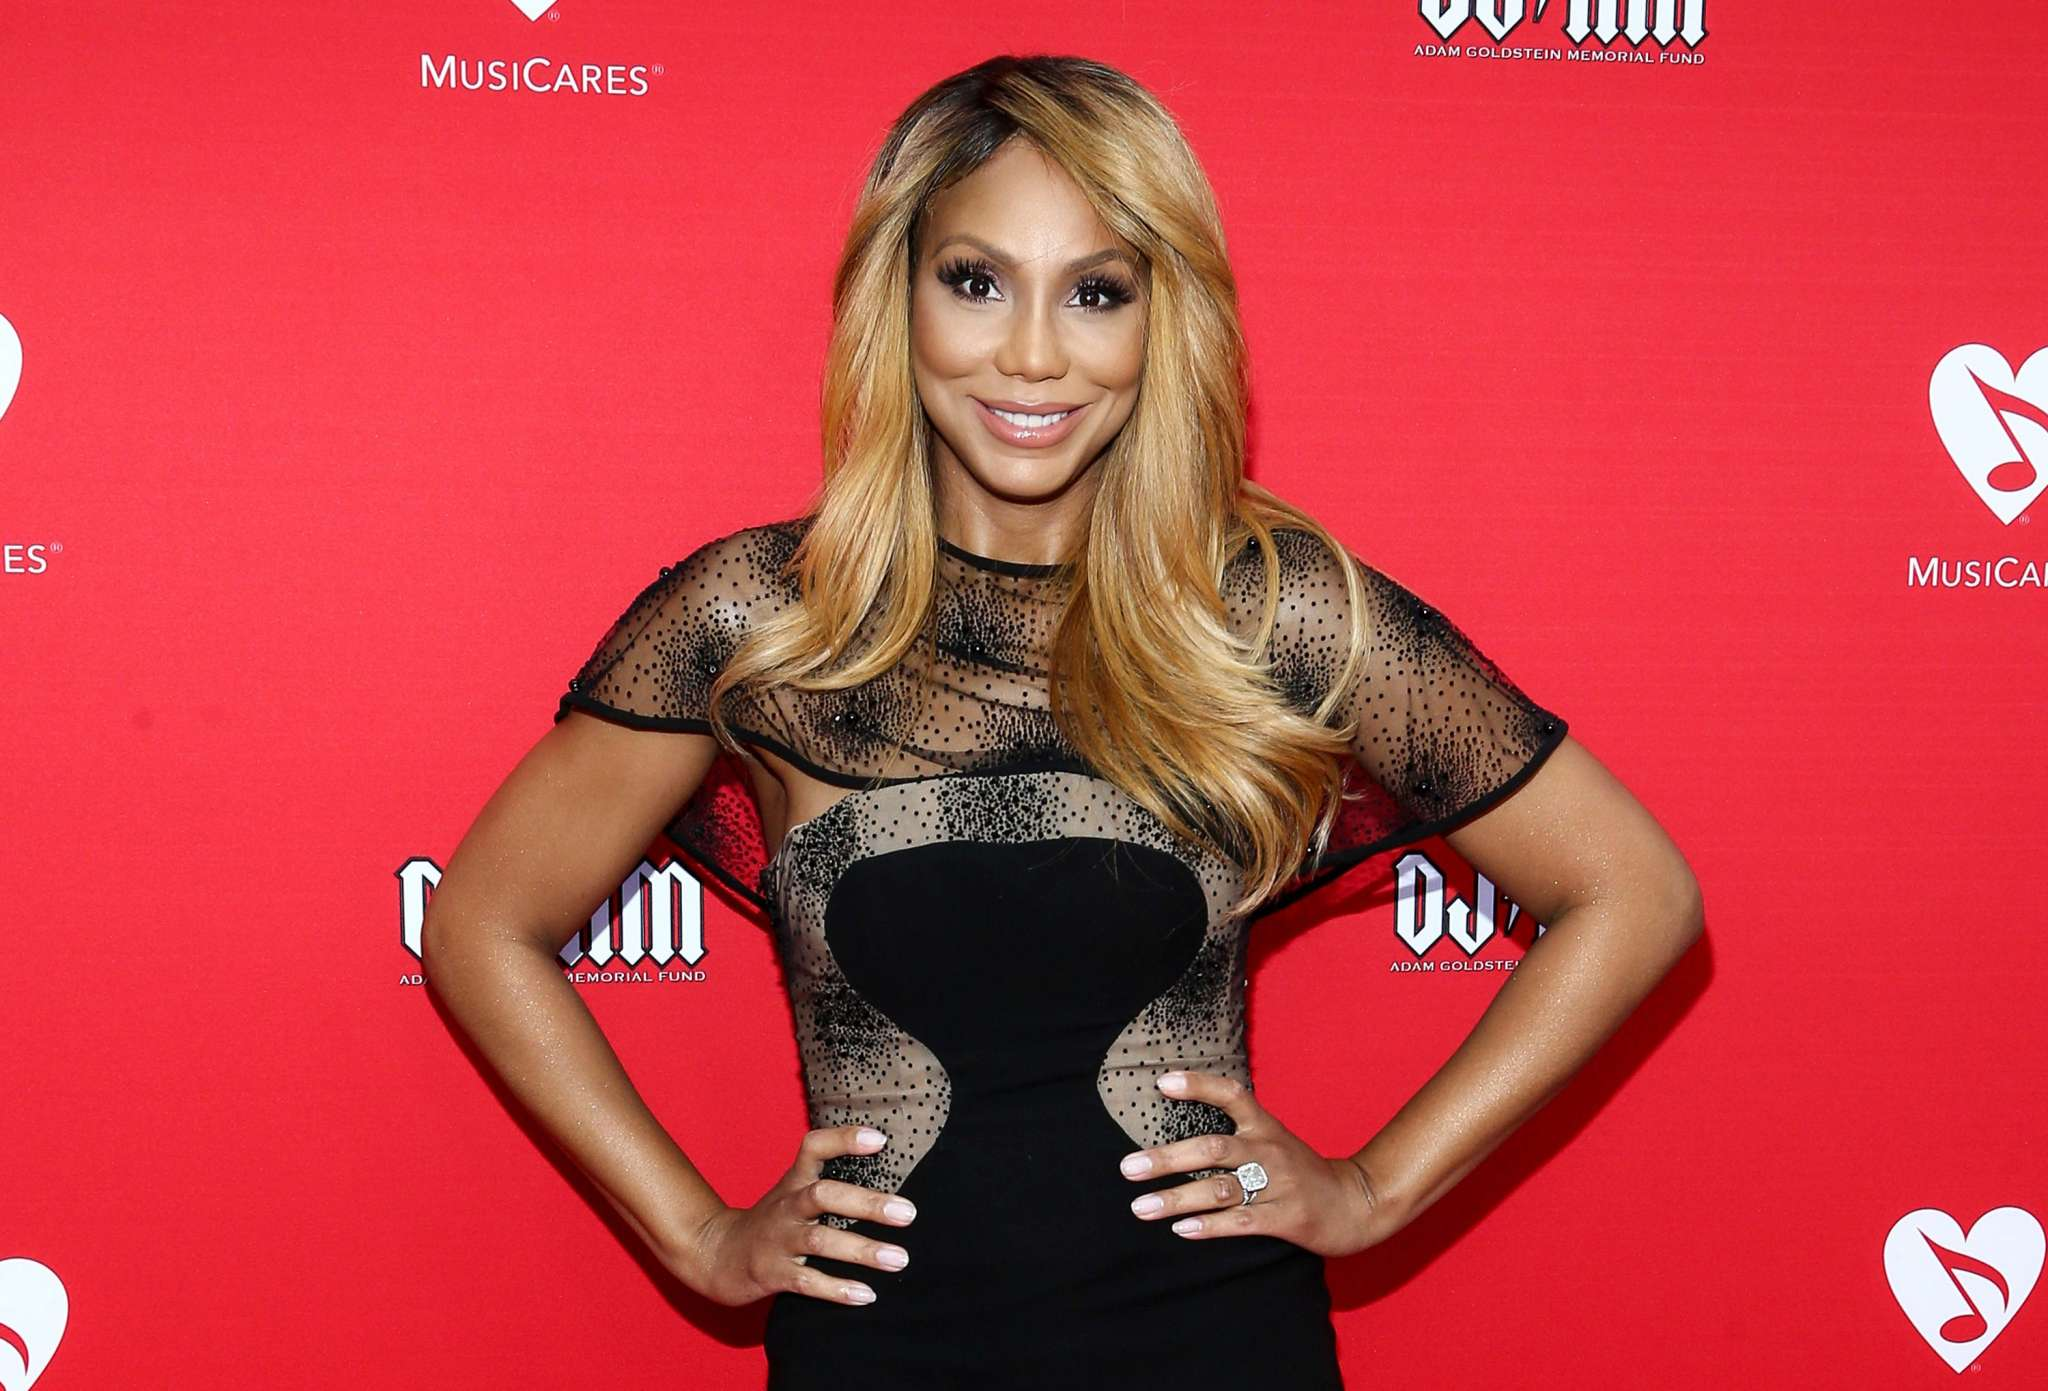 """tamar-braxton-tells-fans-that-her-recent-vacay-is-one-of-the-most-important-trips-of-her-life-check-out-the-pics-here"""